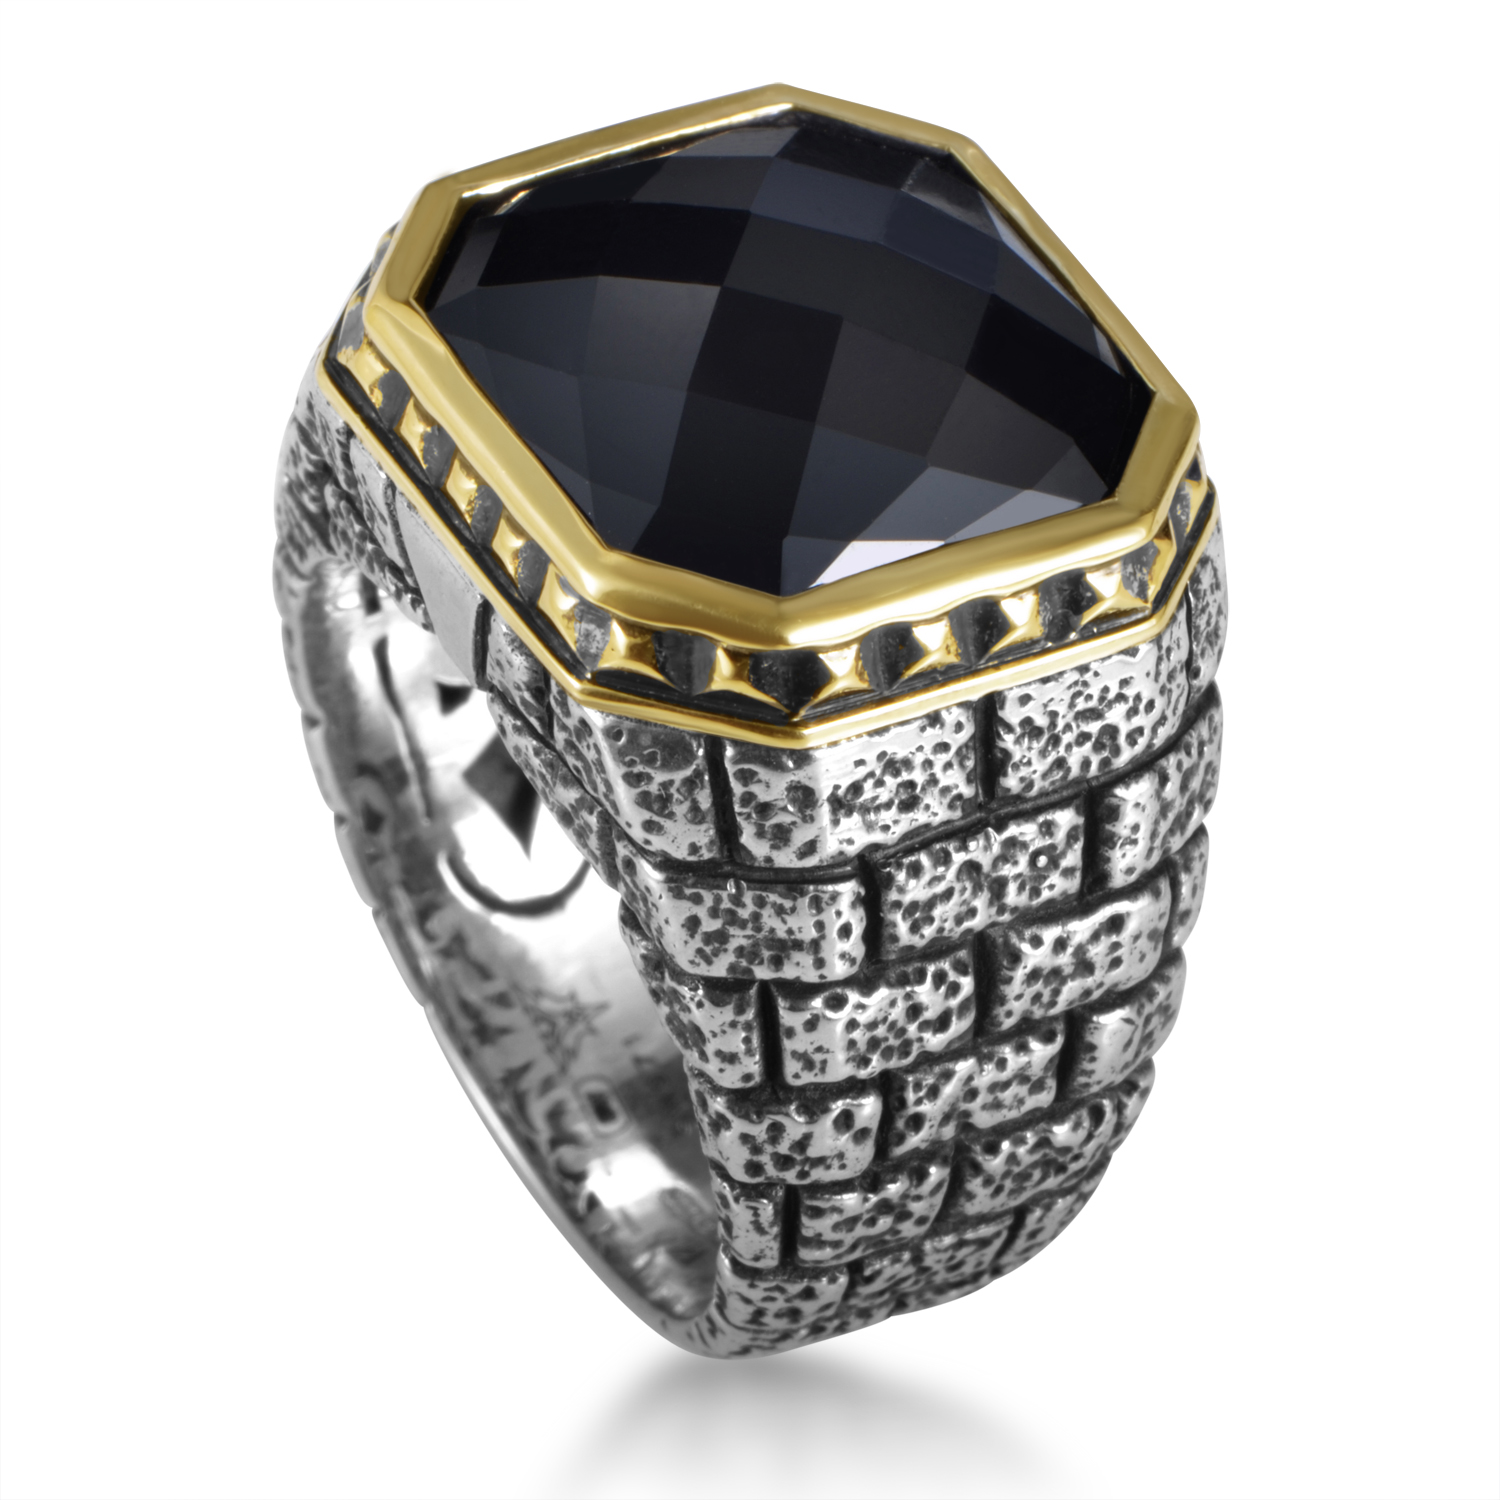 London Calling Silver & 18K Yellow Gold Onyx Ring